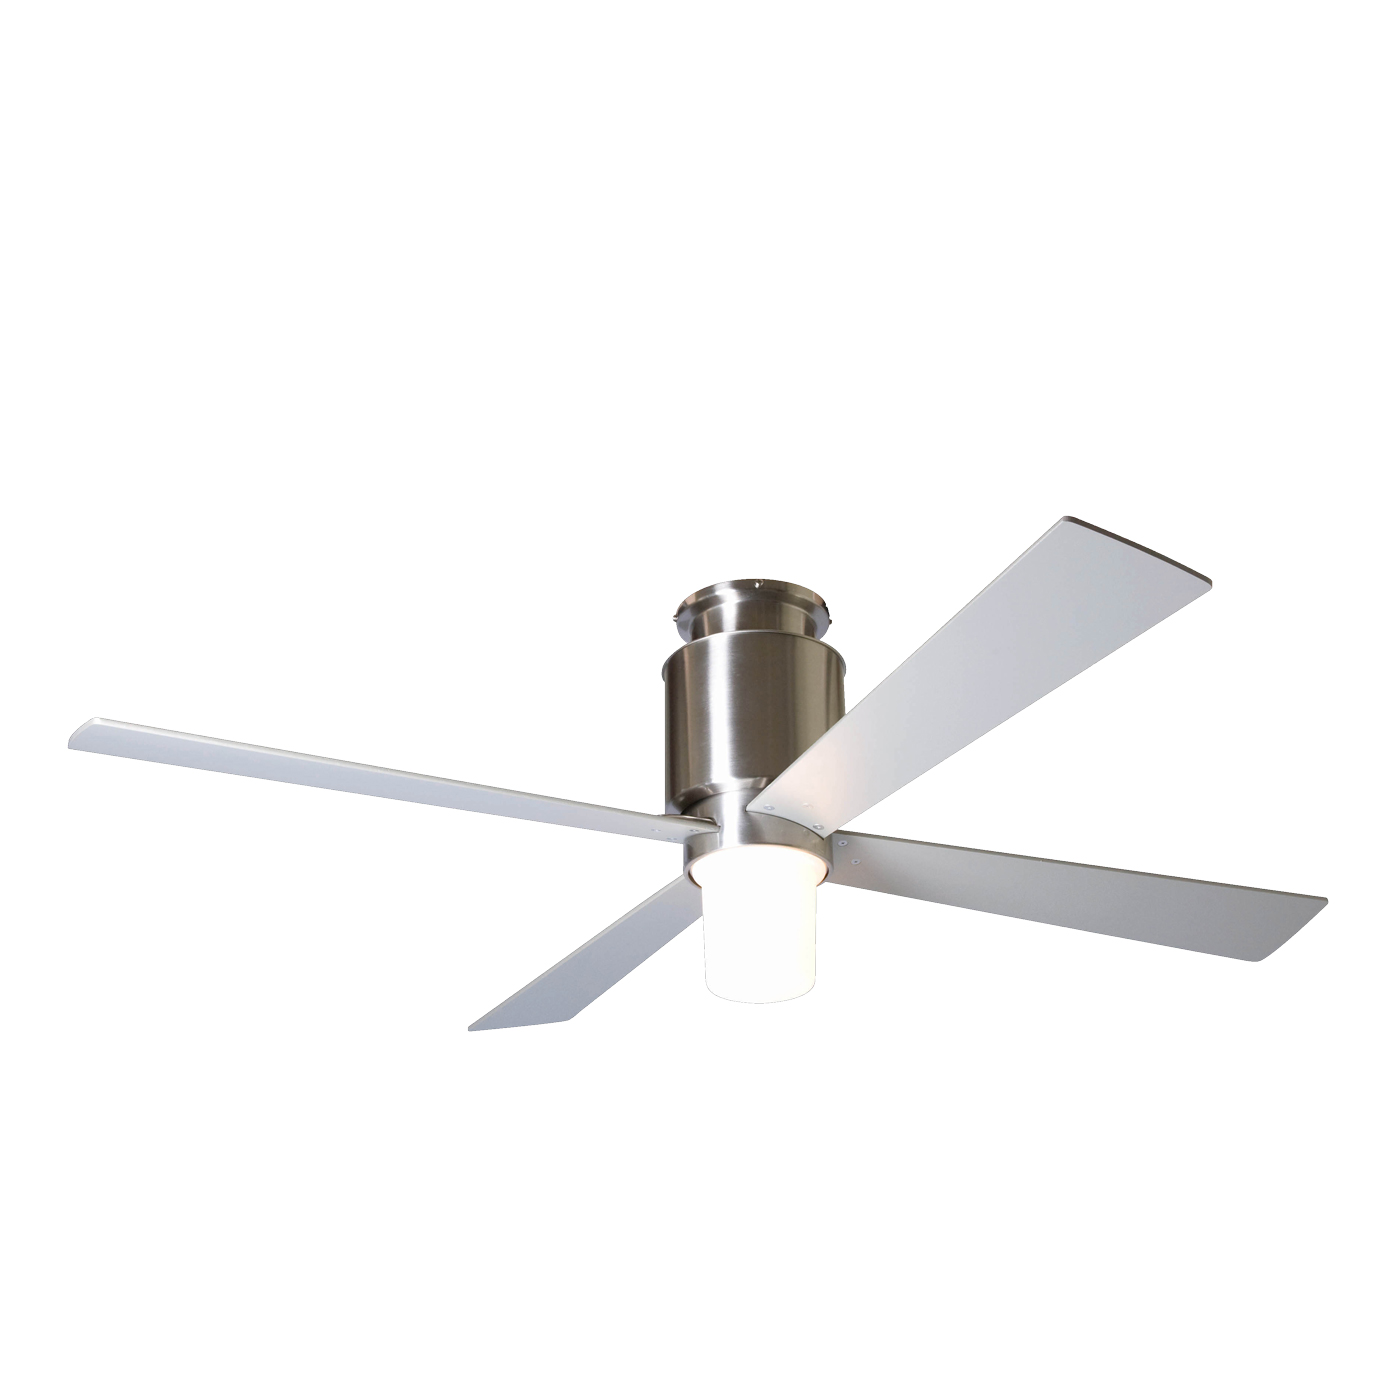 Modern Ceiling Fan Company: Lapa Hugger Ceiling Fan (Optional Light)